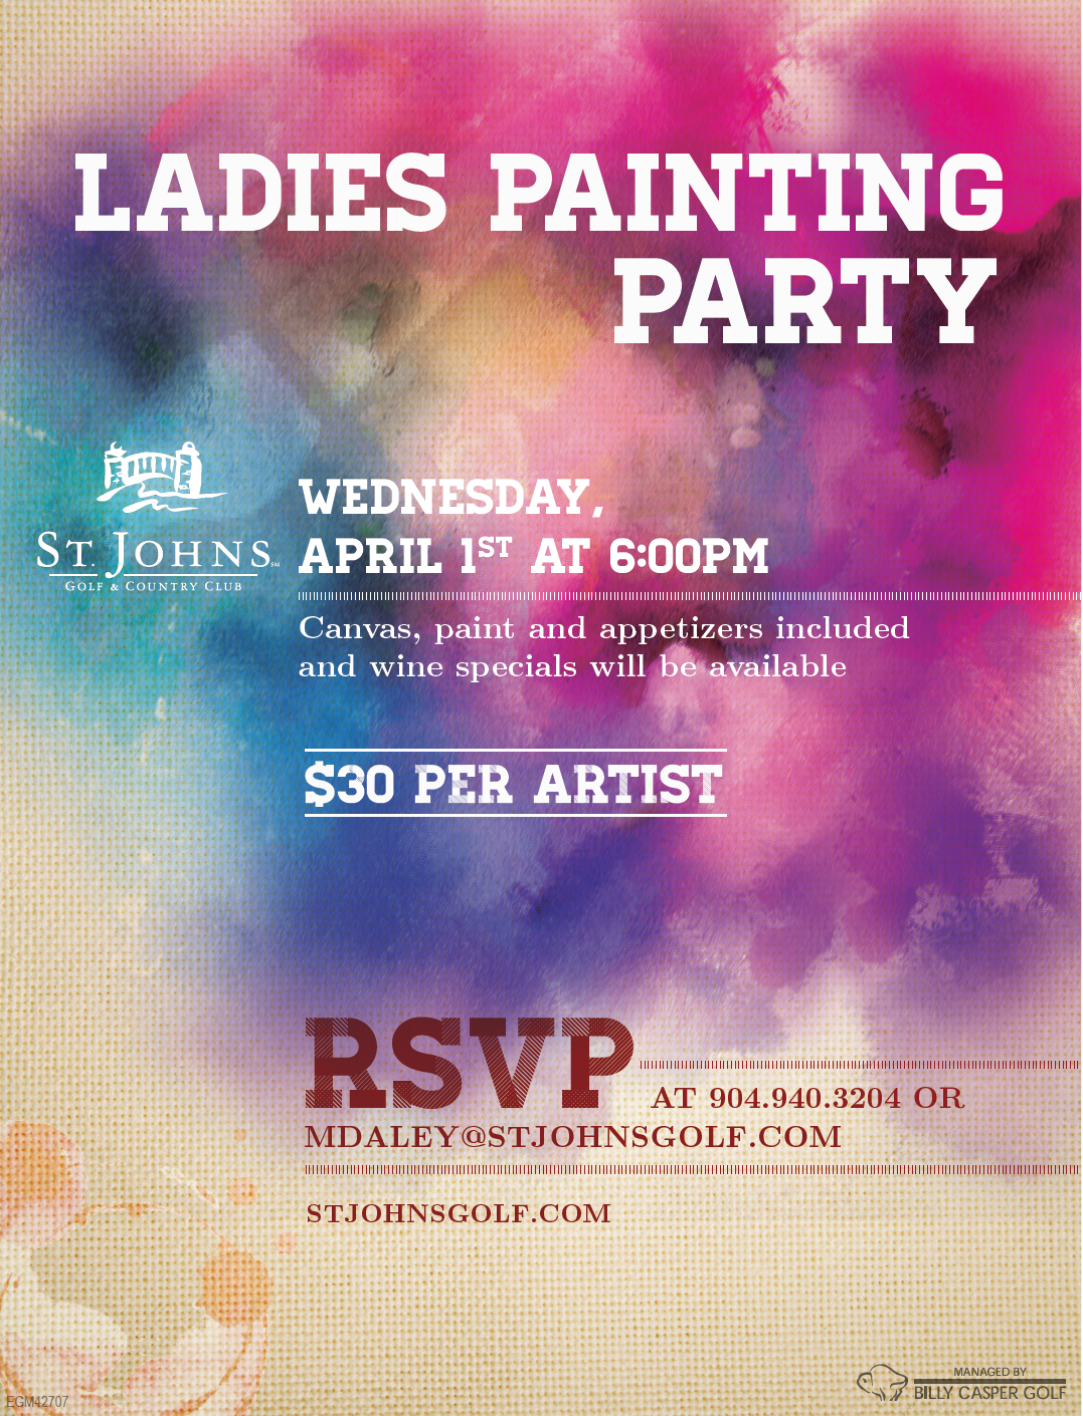 Ladies Painting Party 4/1/15